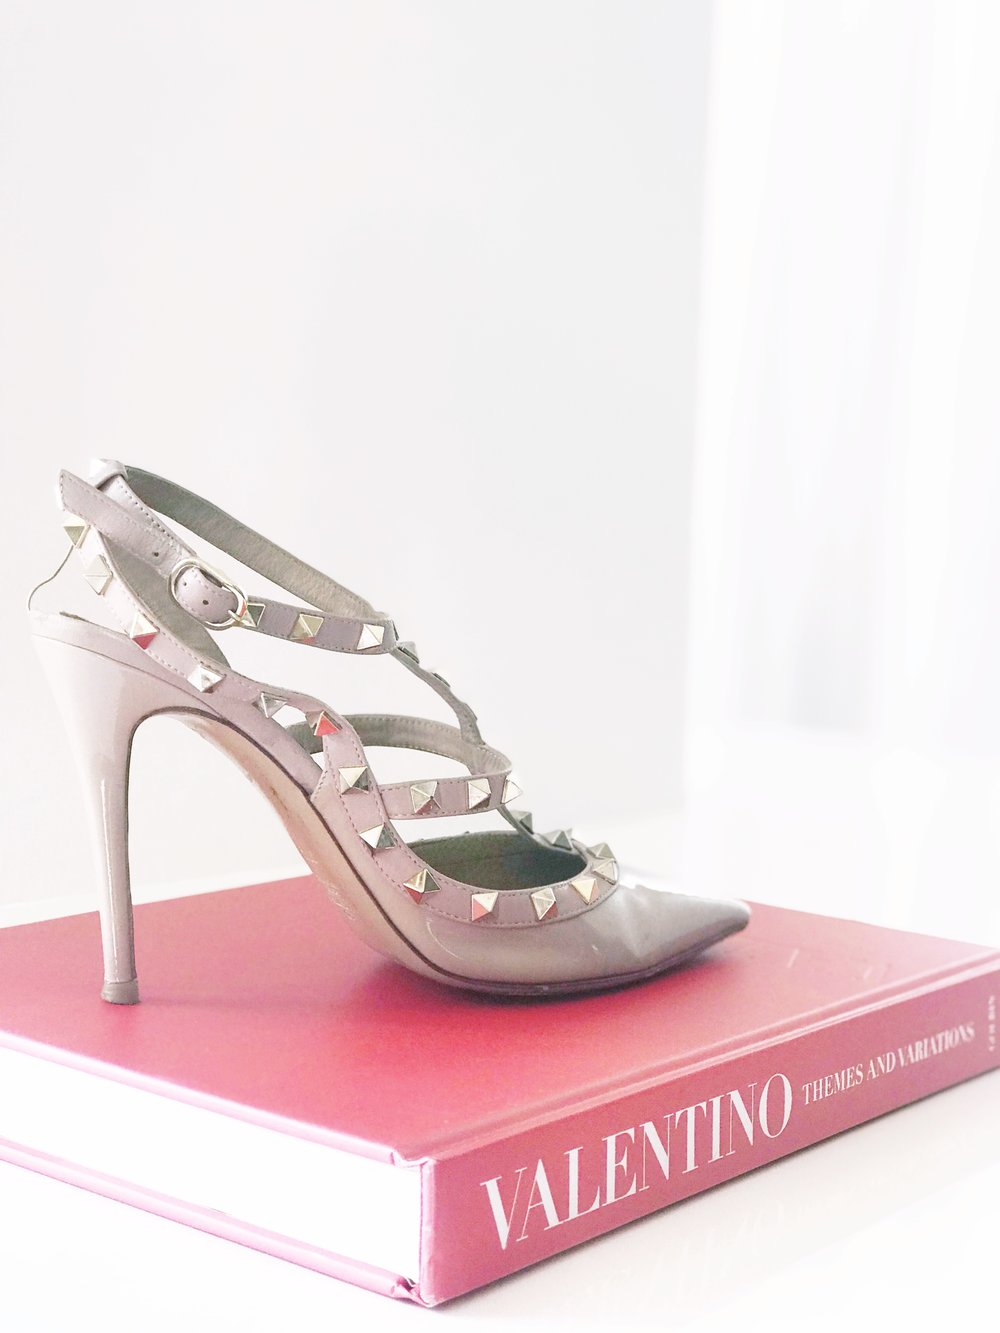 THE-CAROLINE-DOLL-BLOG-NATIONAL-VALENTINO-DA7-FASHION-BLOGGER-3.JPG